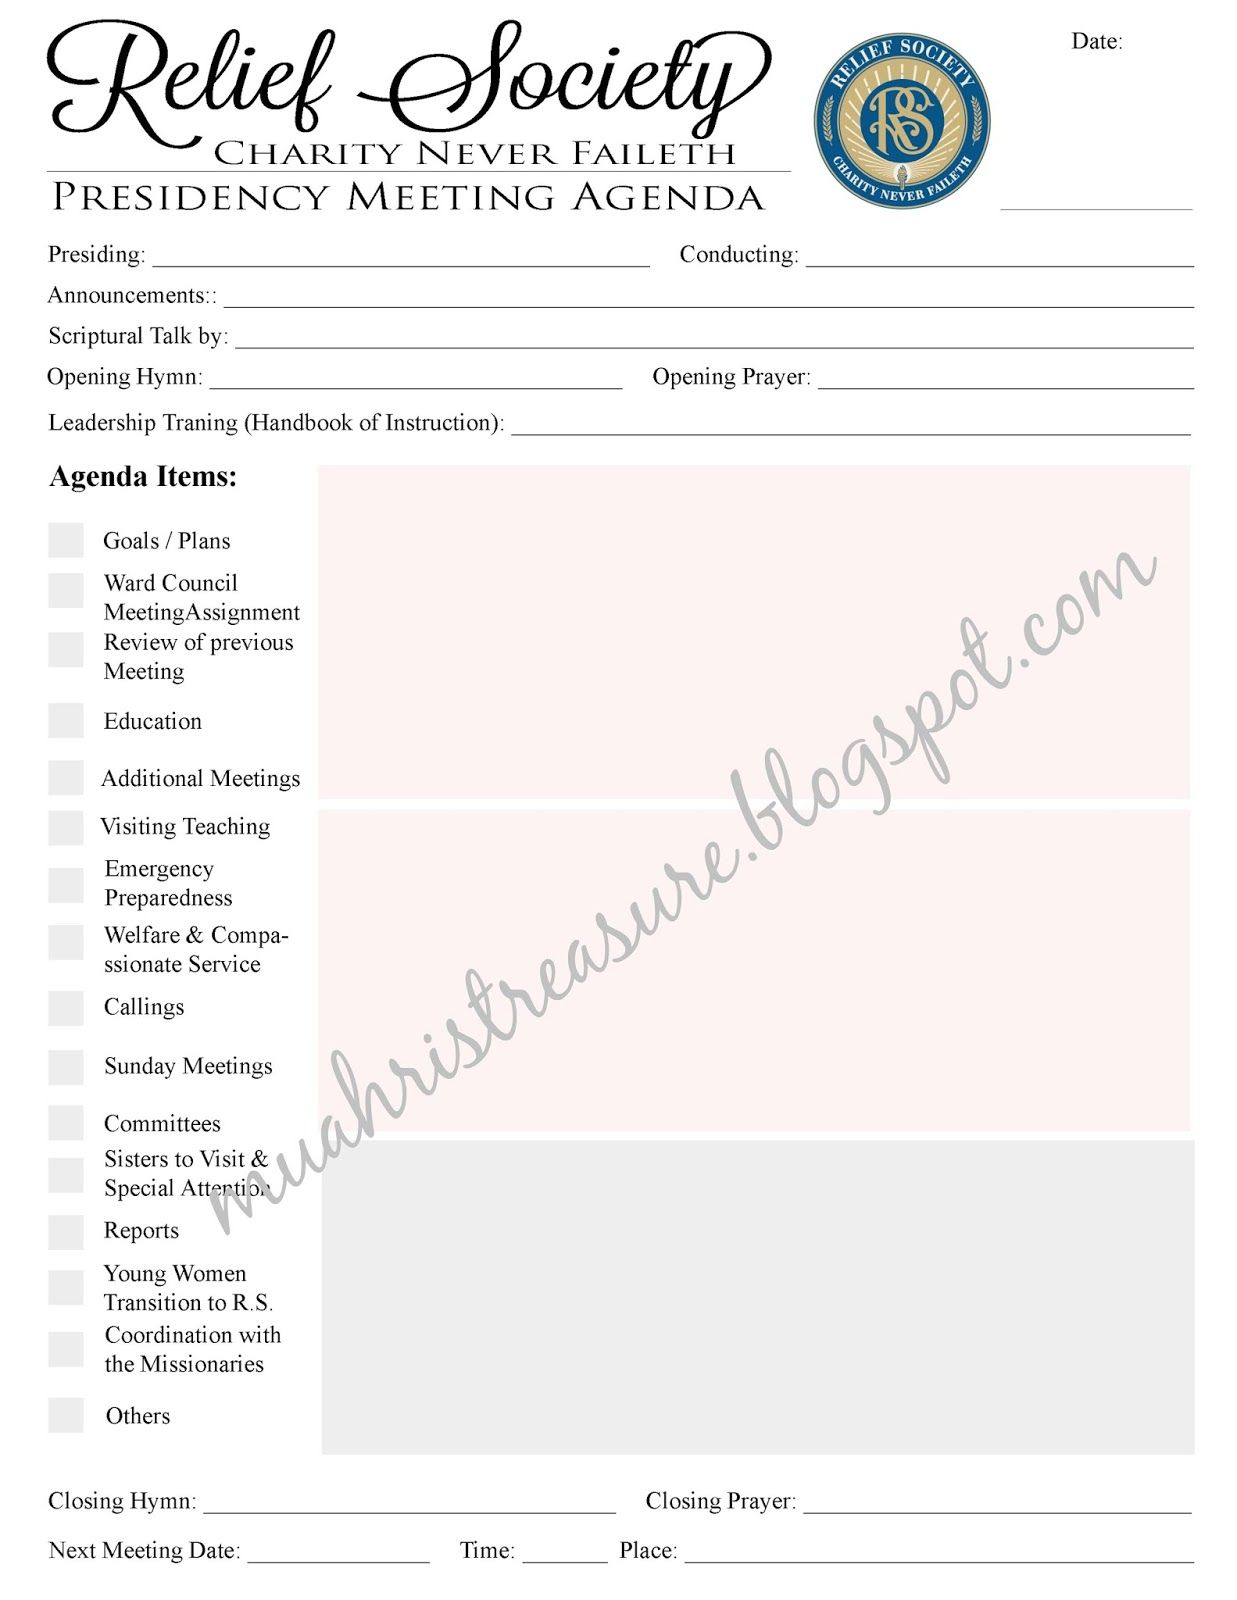 I Made A Meeting Agenda For The Relief Society Presidency It Has